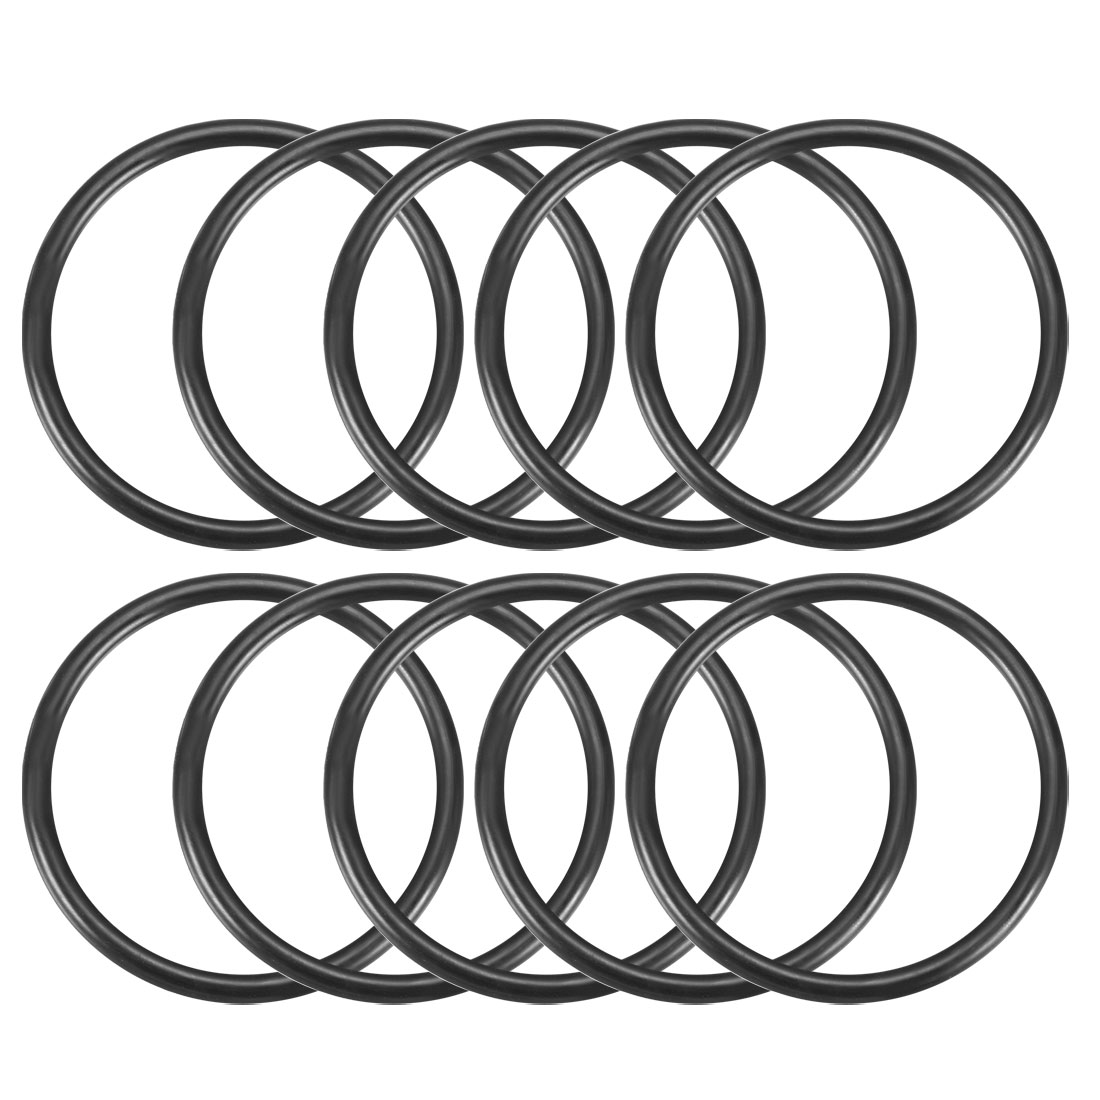 10Pcs Black 69mm OD 59mm Inner Dia Nitrile Rubber O-ring Oil Seal Gaskets